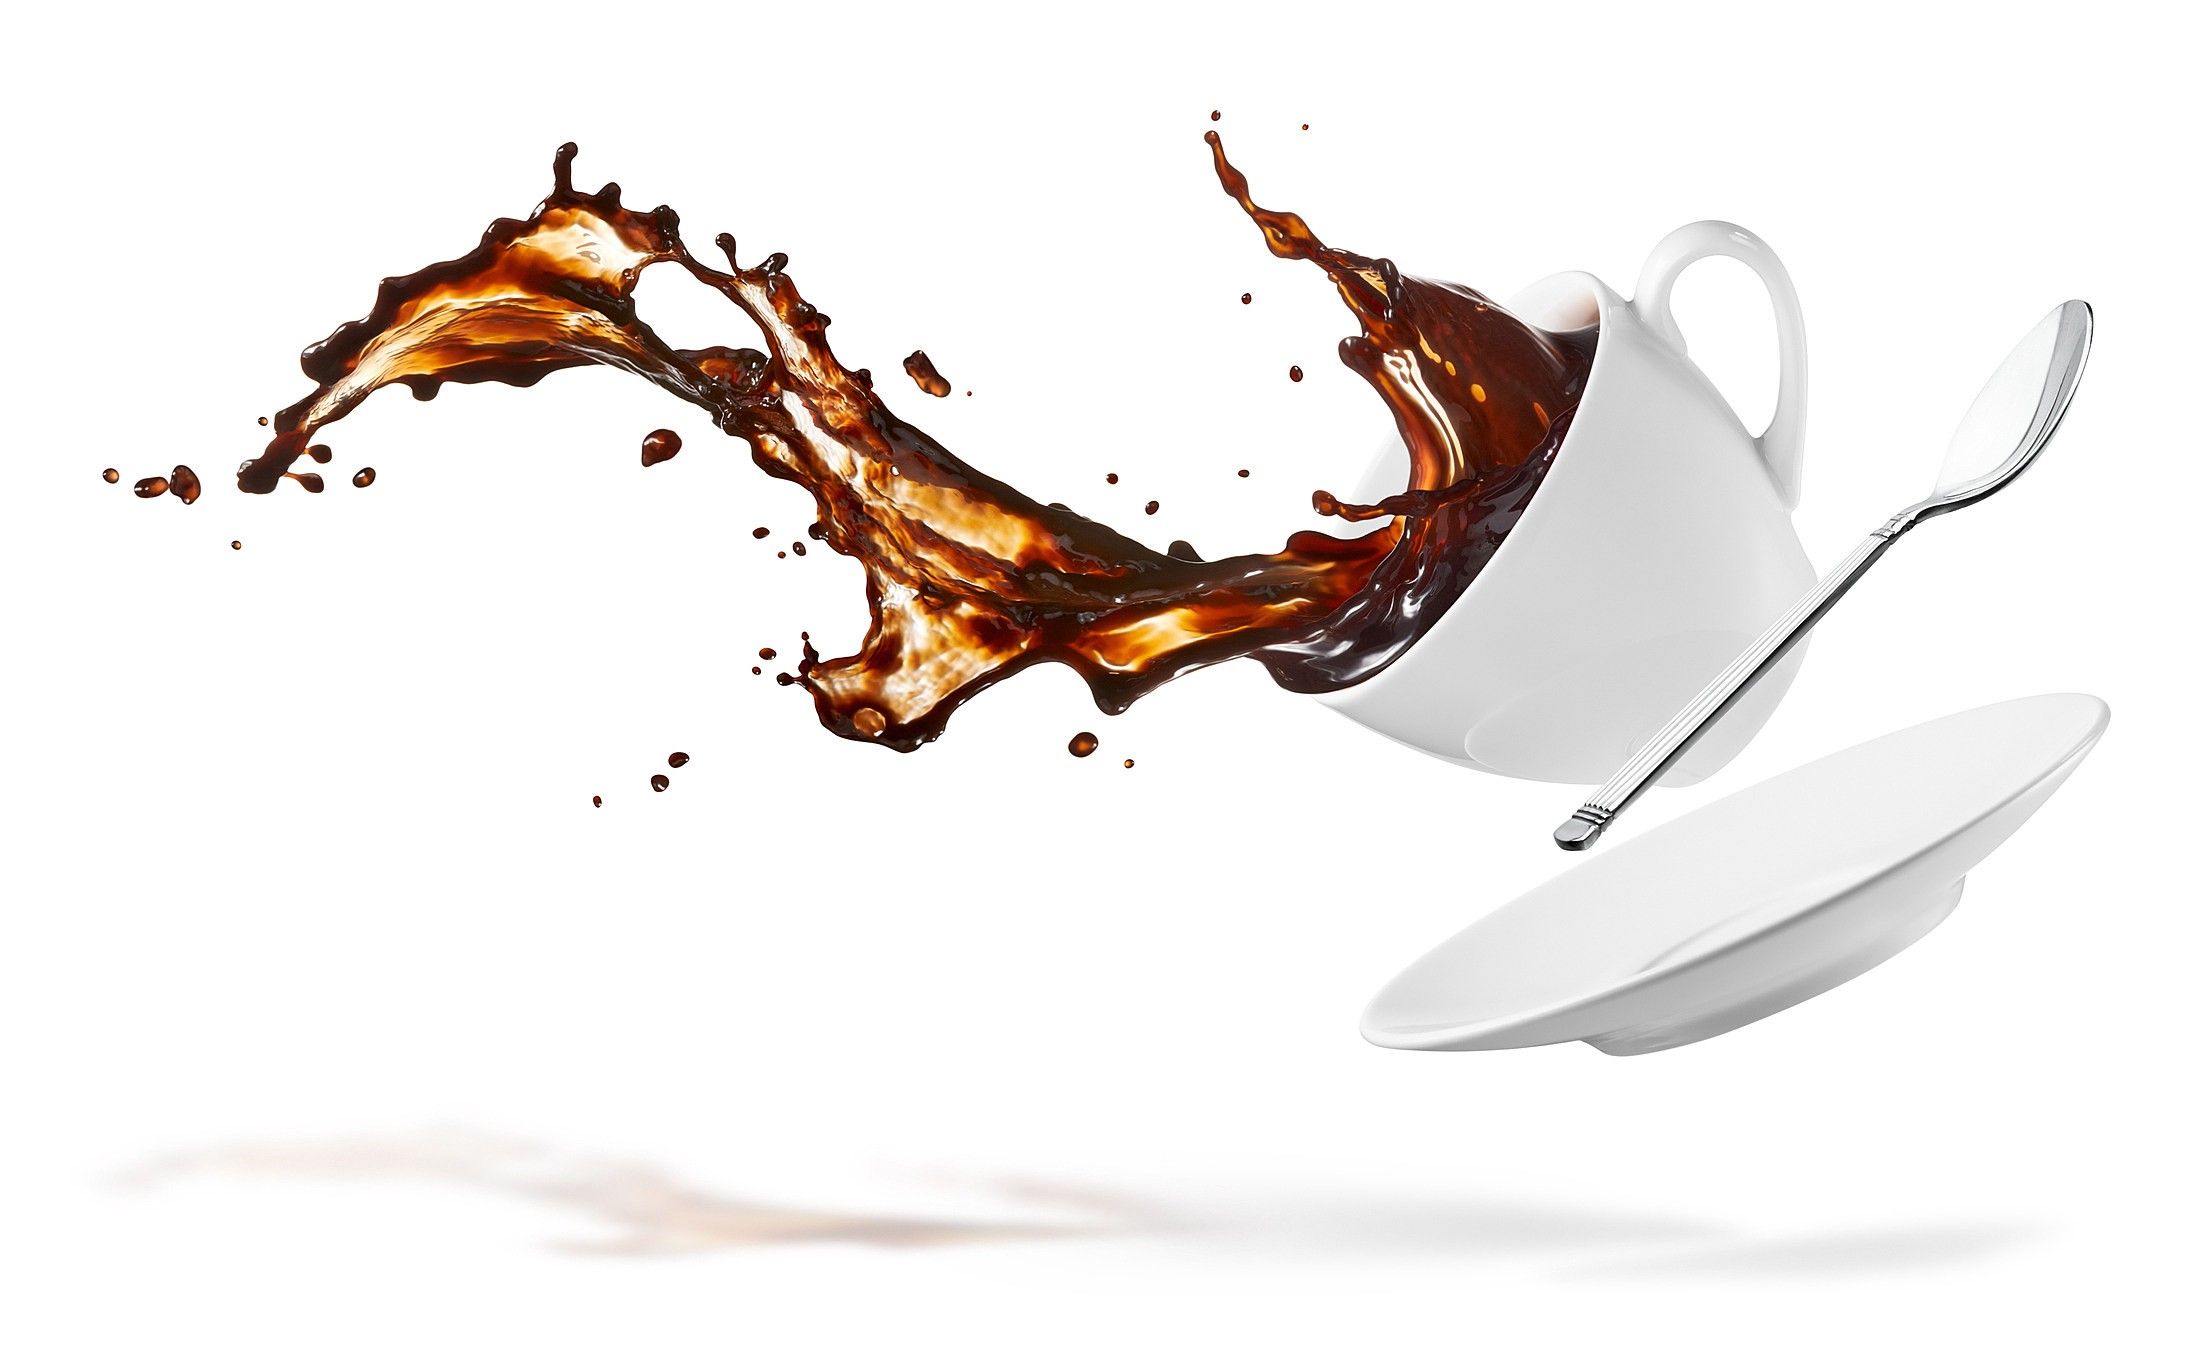 Why Did You Spill The Coffee? - Sarah R. Yazback - Medium